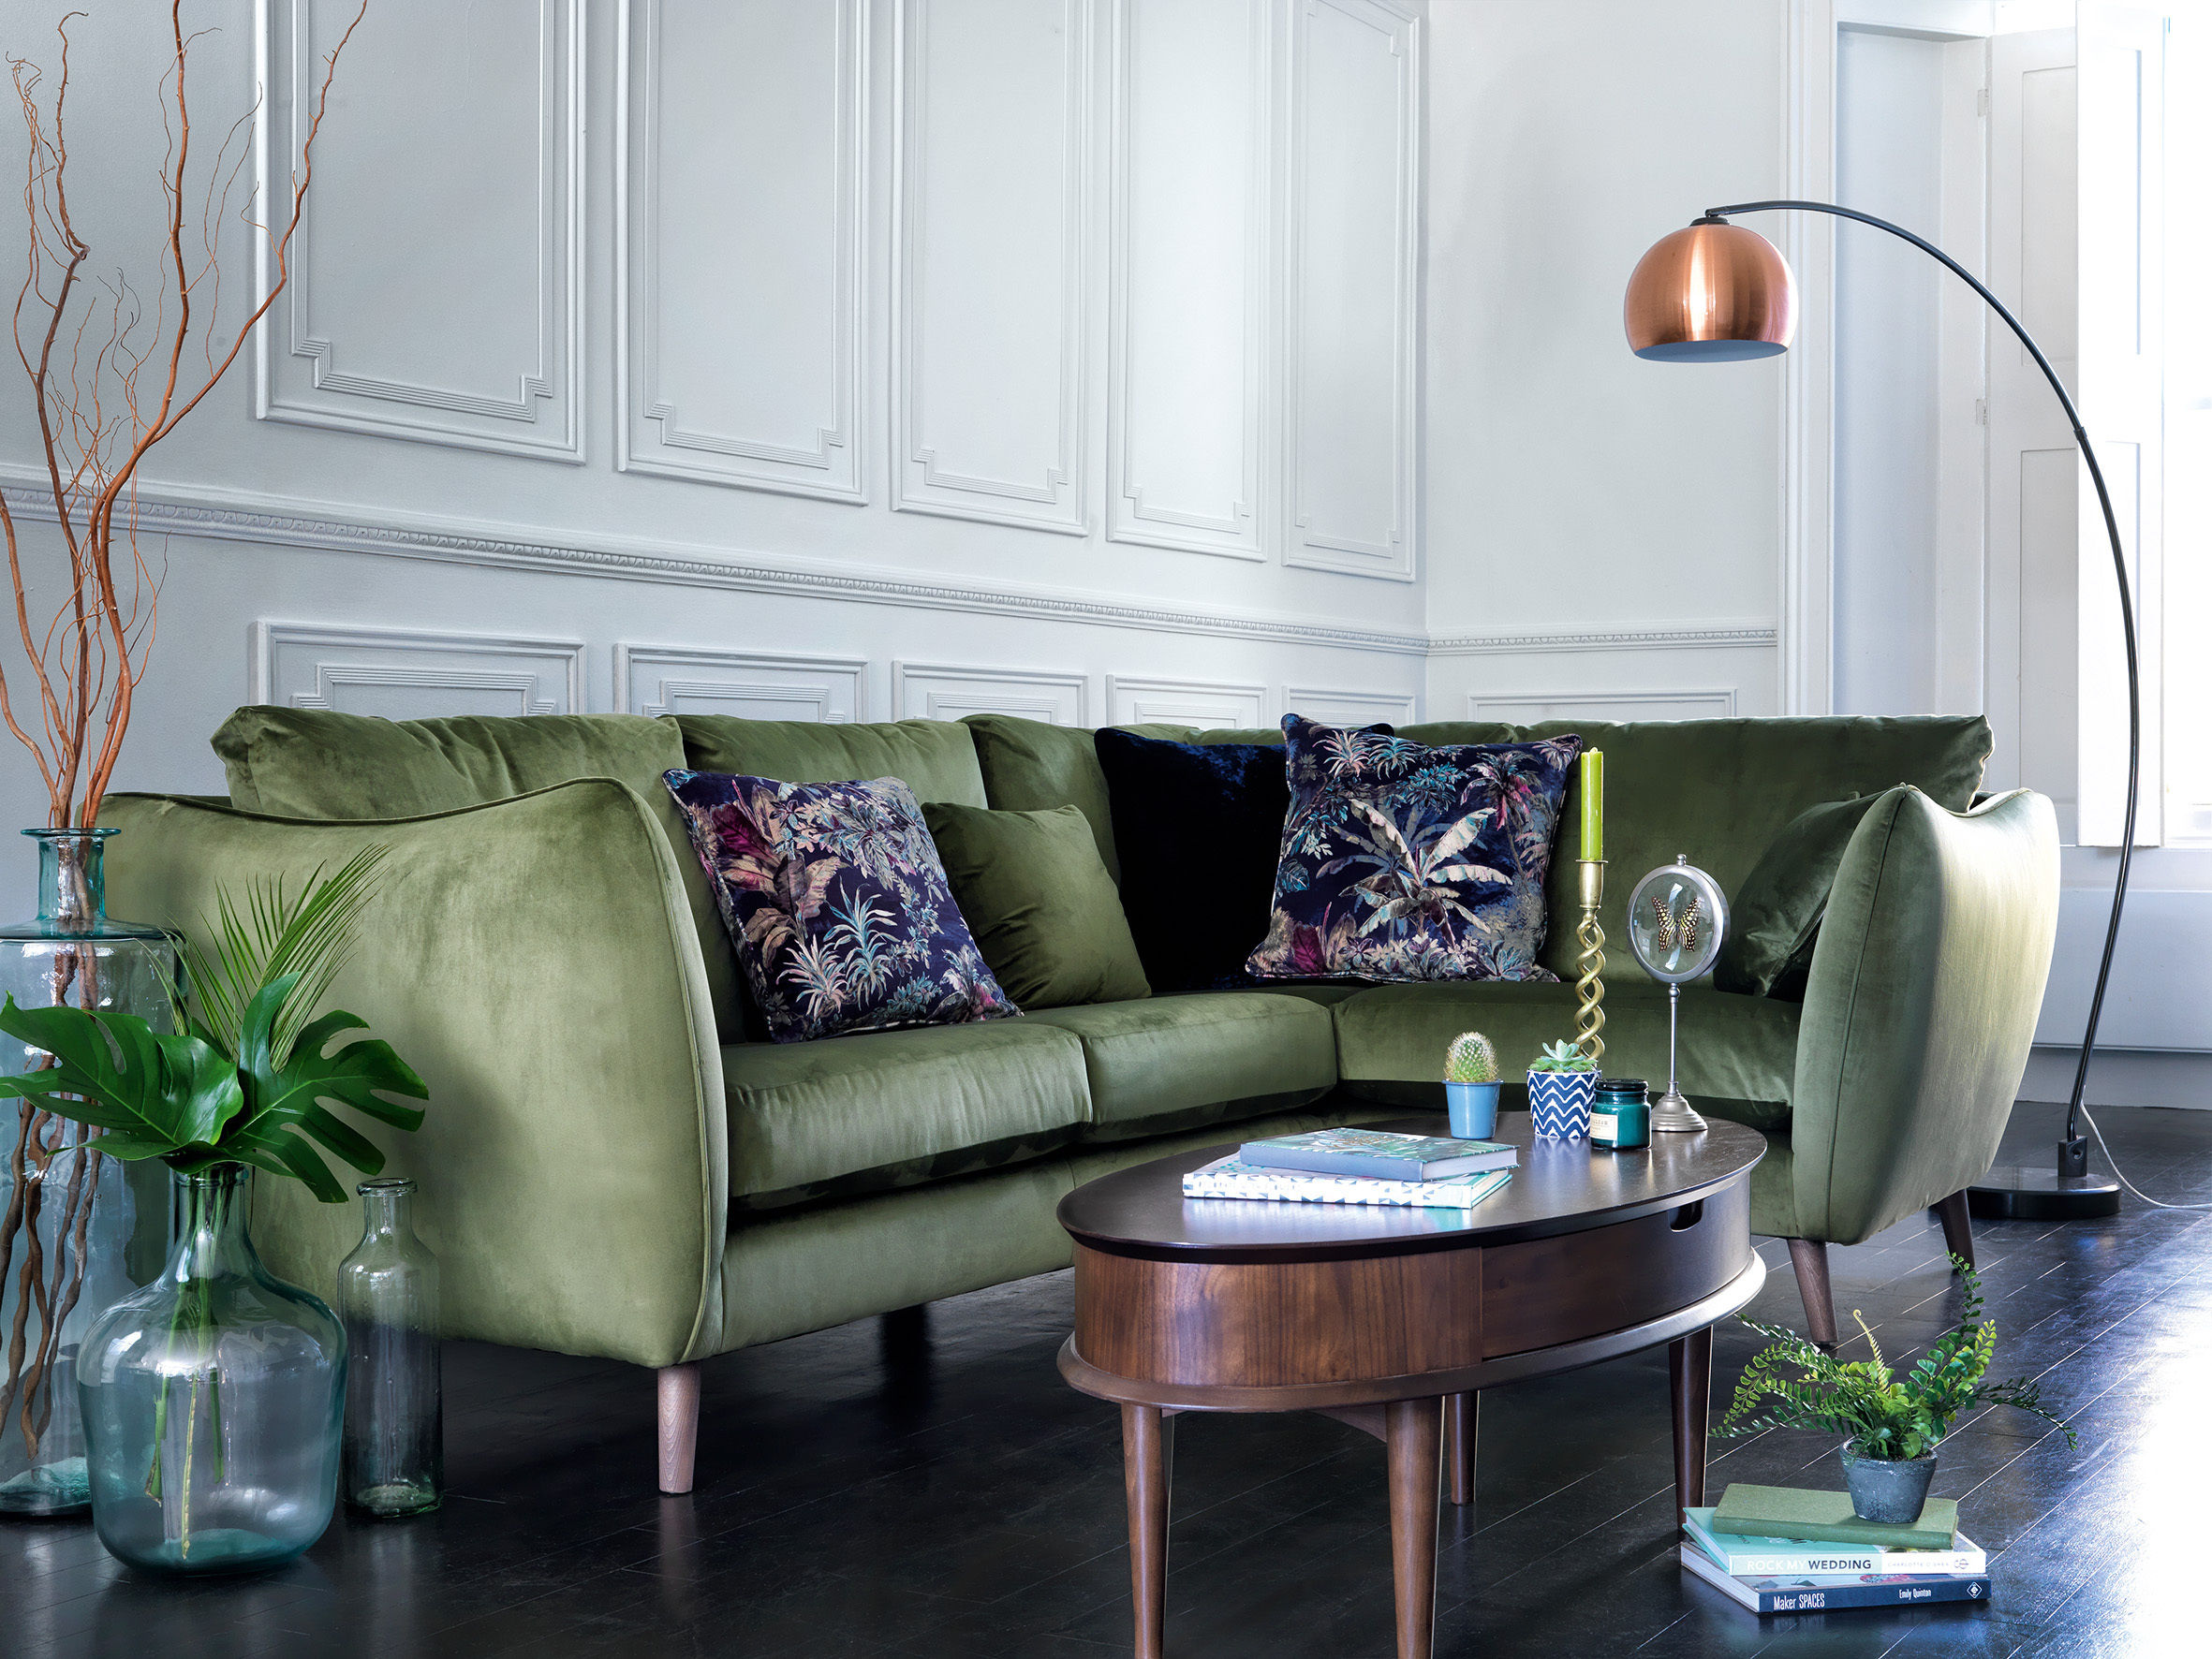 City Loft fabric corner sofa, £1,465, currently reduced online to £1,095; Copper retro ball floor lamp, £379 currently reduced online to £279, Furniture Village.